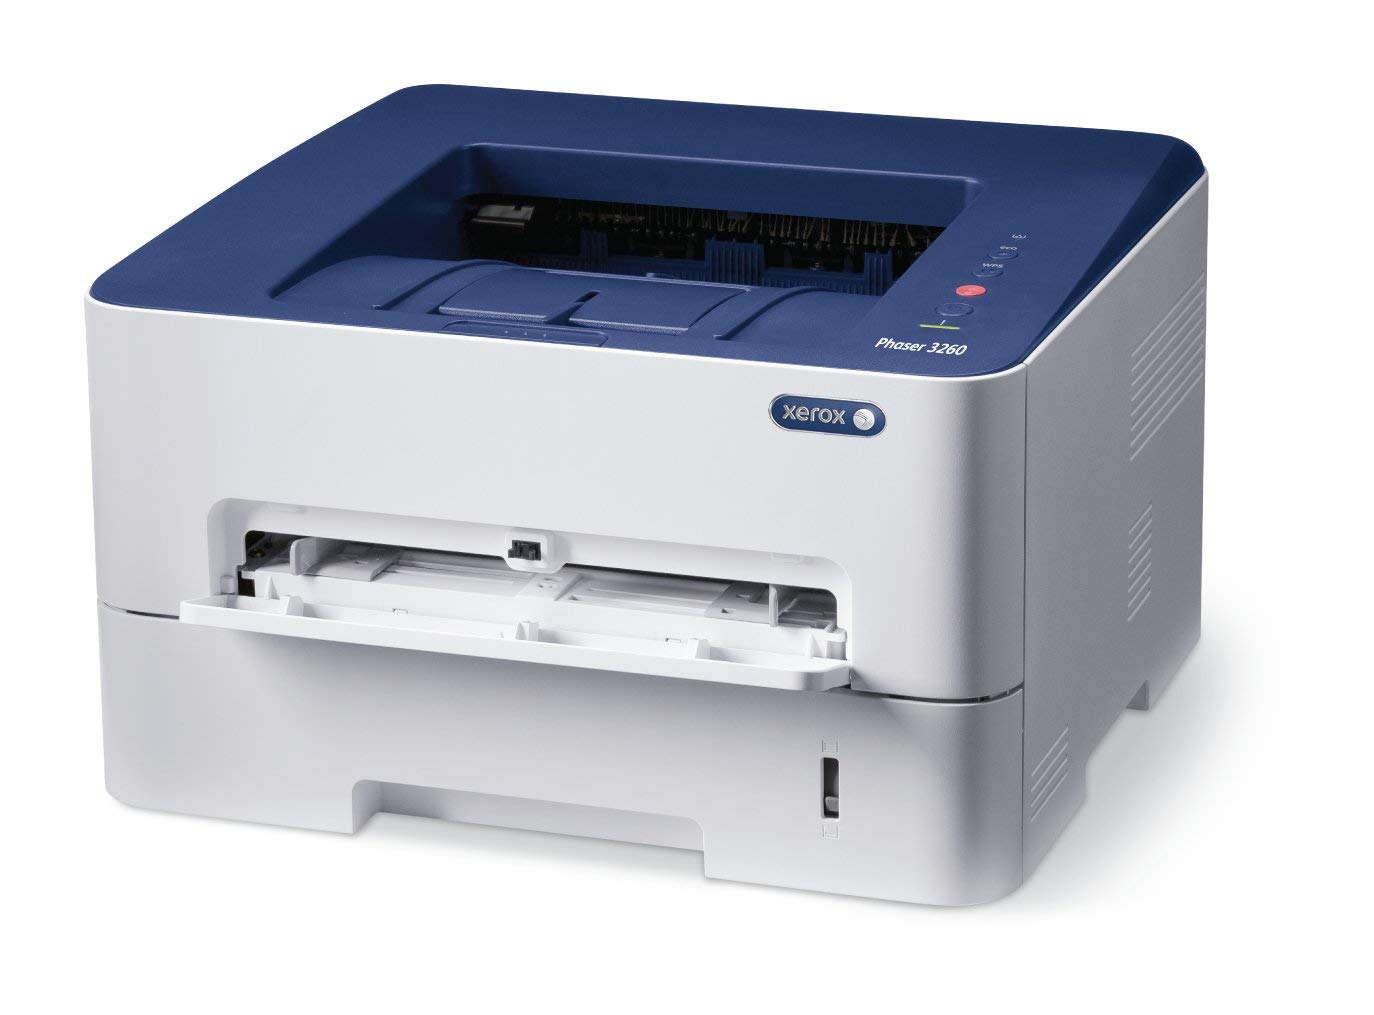 Xerox Phaser 3260 Monochrome Laser Printer With Built-In Wi-Fi Connectivity (Renewed) by Xerox (Image #3)